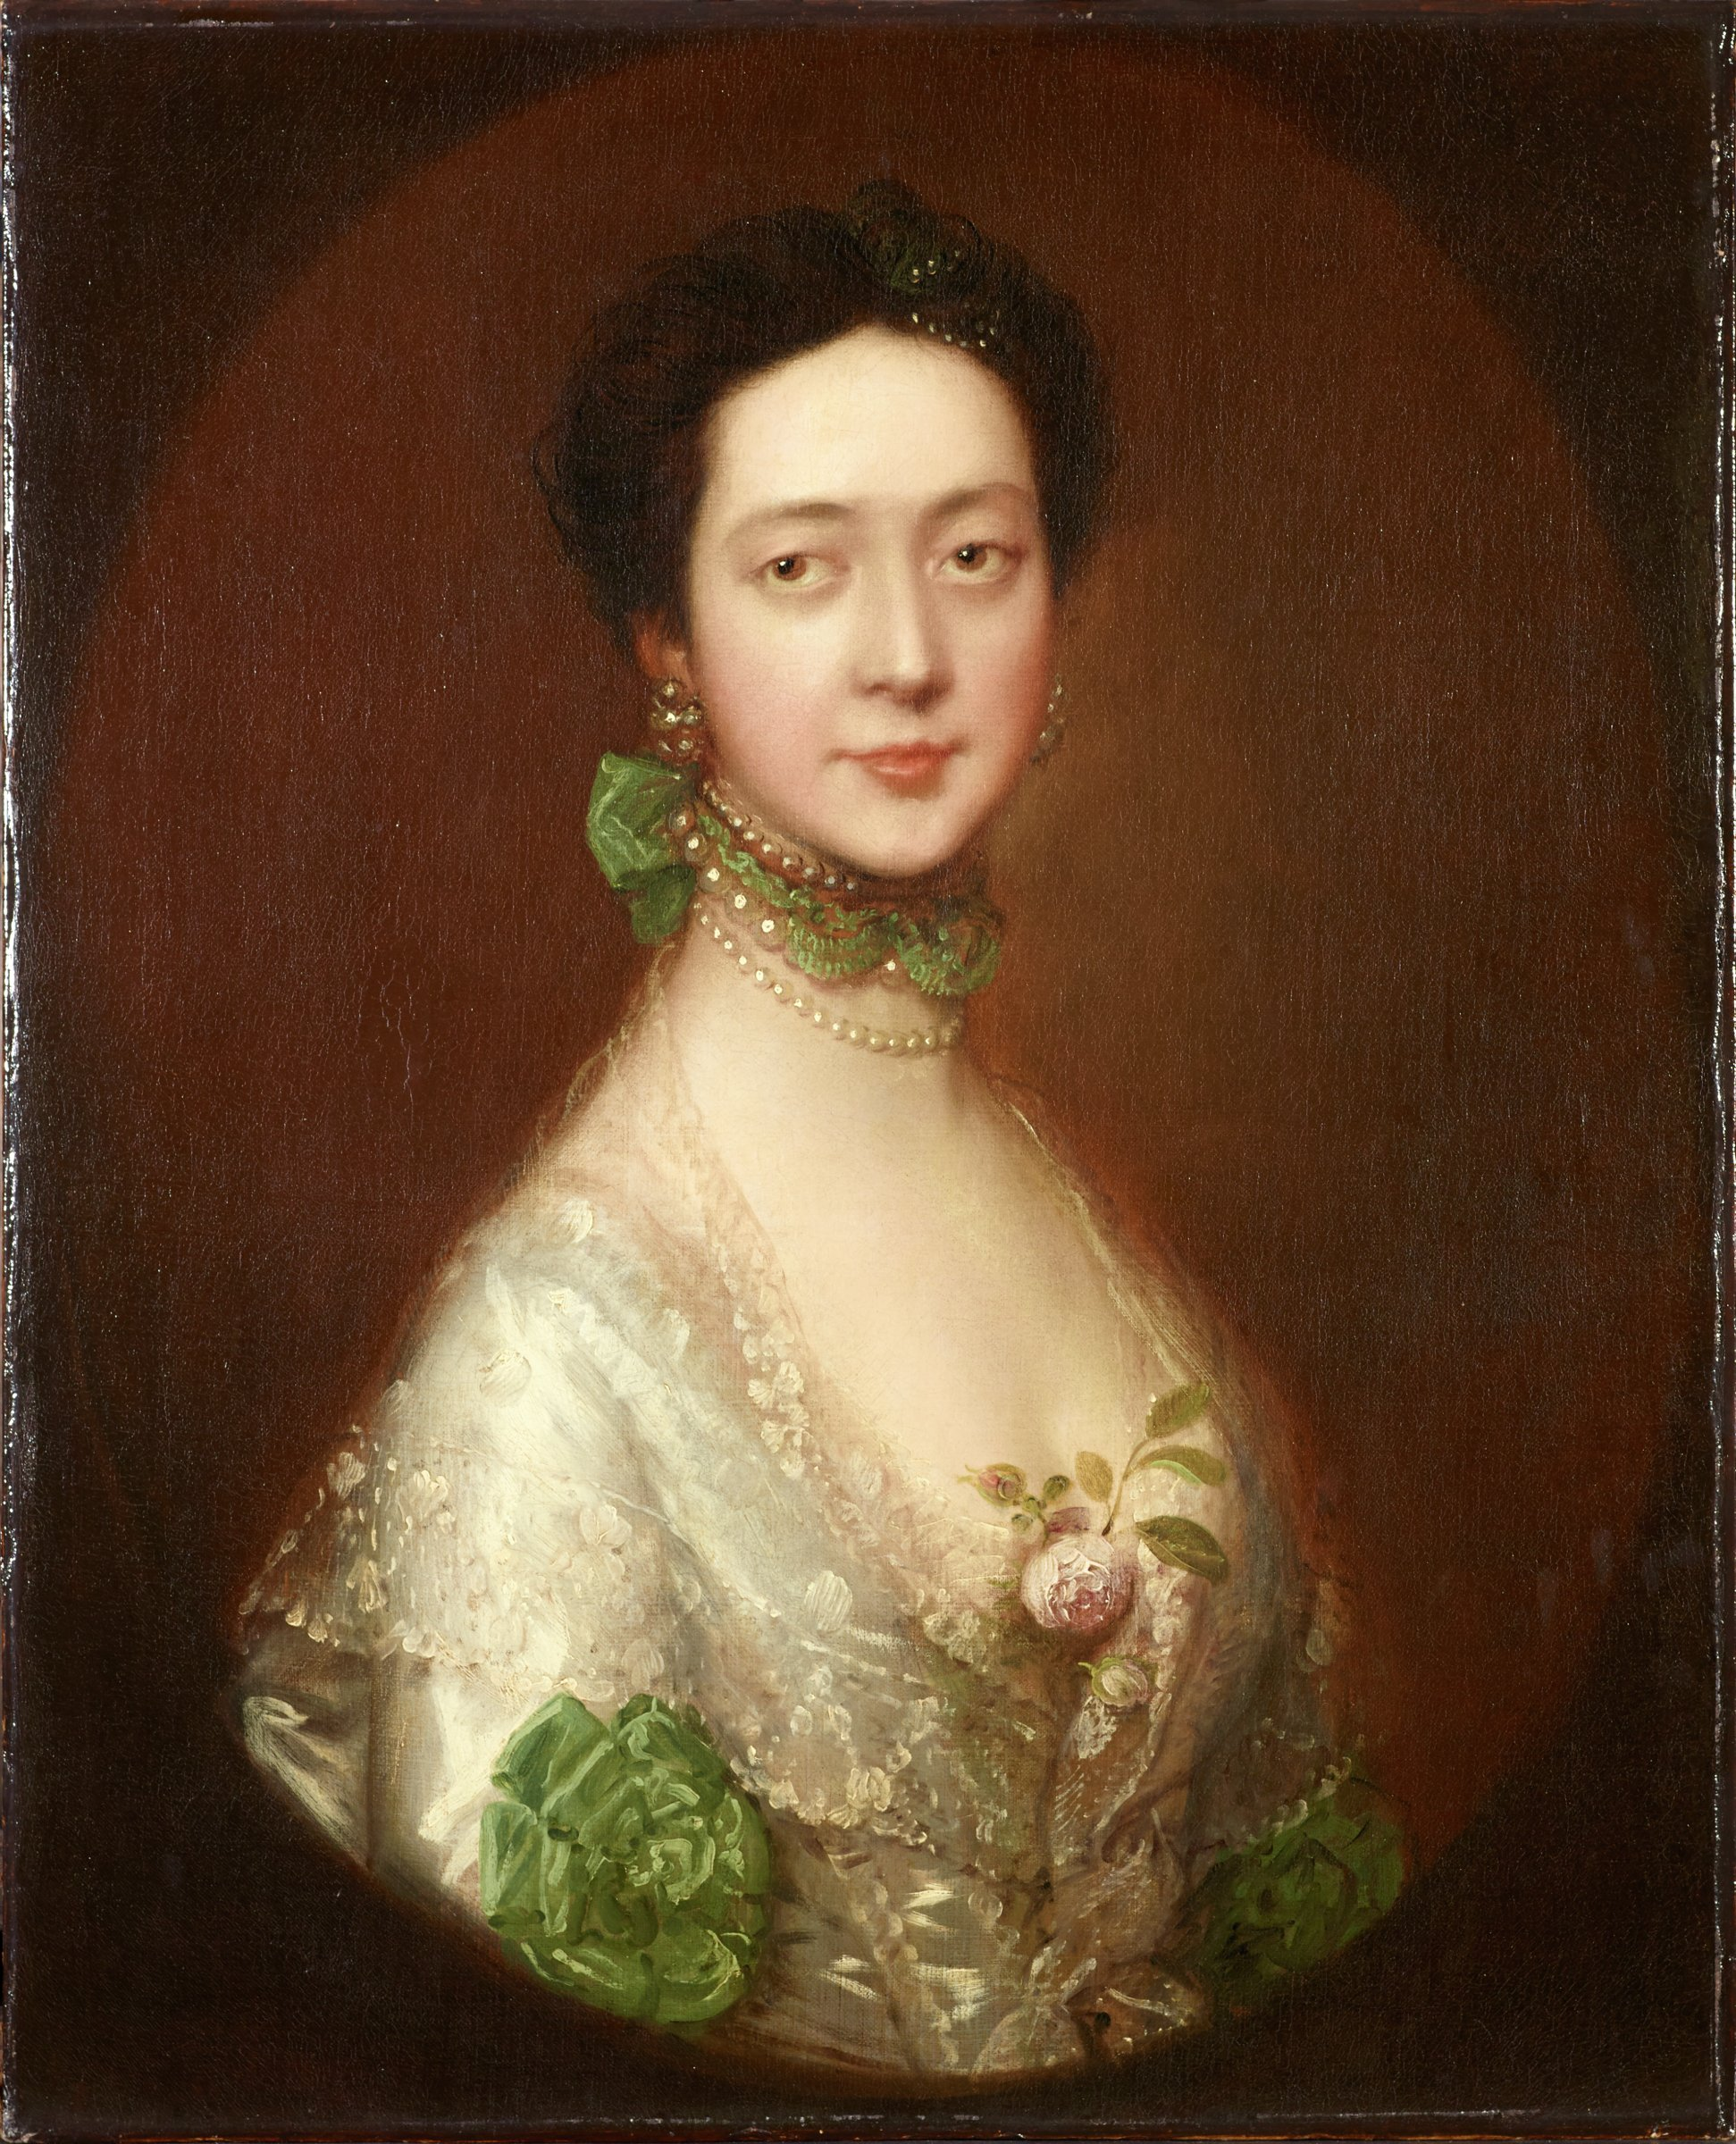 Mrs. William Monck died in 1775 according to Waterhouse 1958, p. 81, no. 489. Born Dorothy Bligh. John Bligh, the first Earl of Darnley is her brother, he died on Sept. 12, 1728.